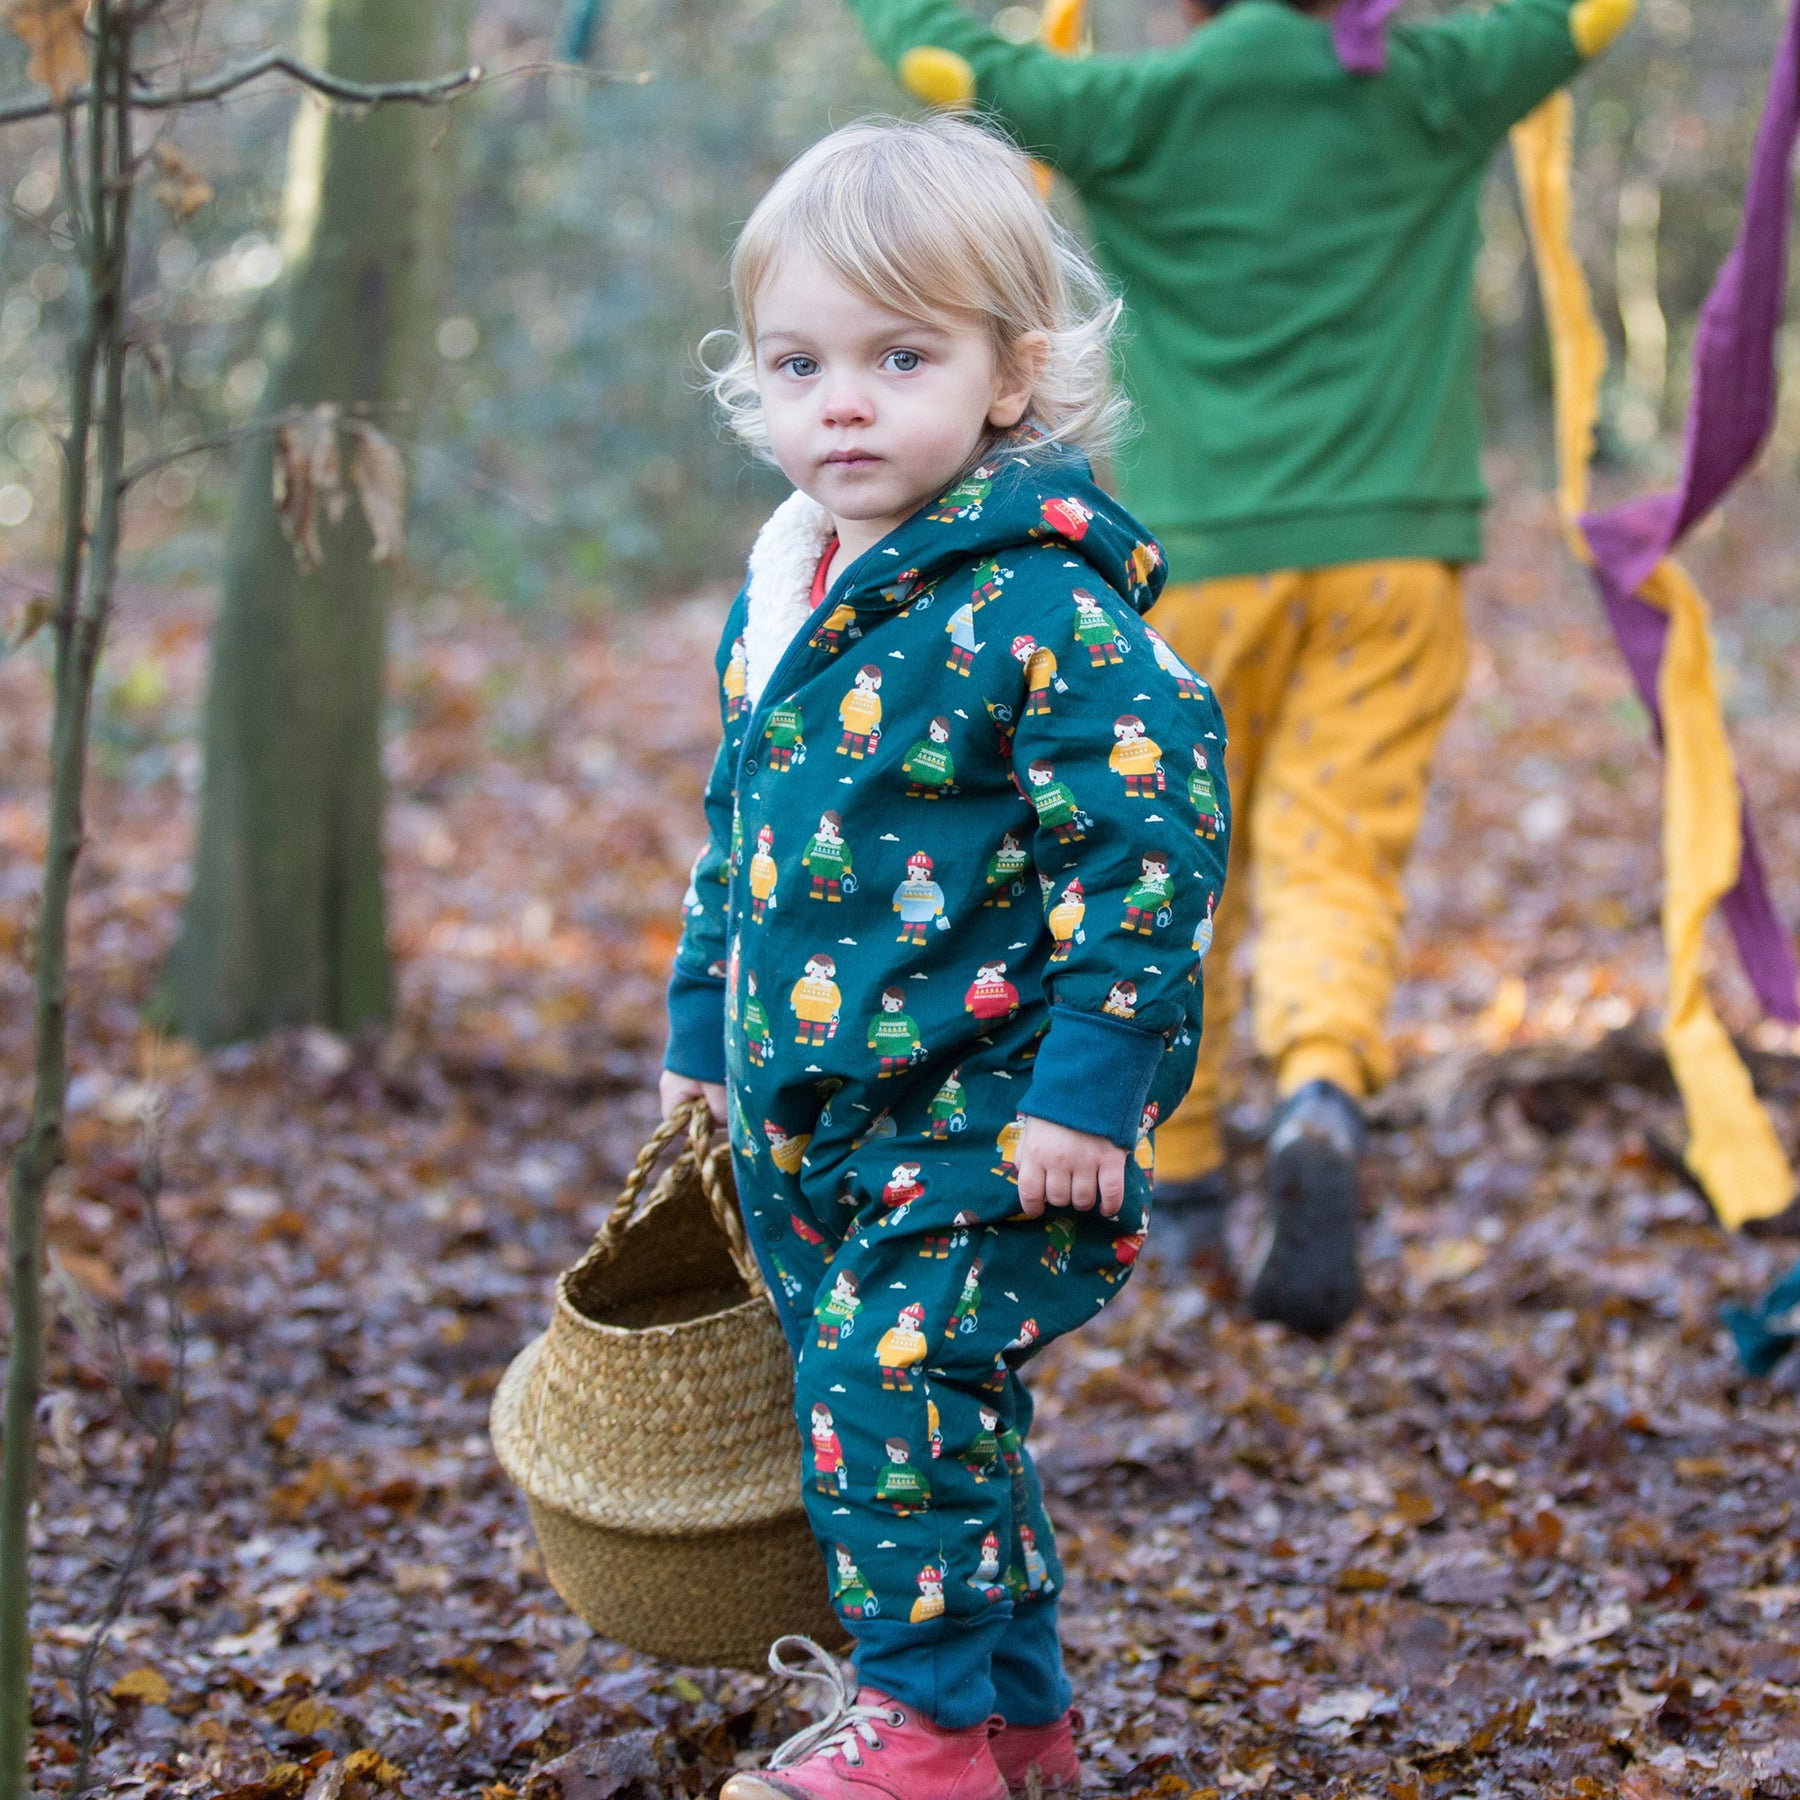 A20 857 A definitive guide to the 20 best sustainable clothing brands for children